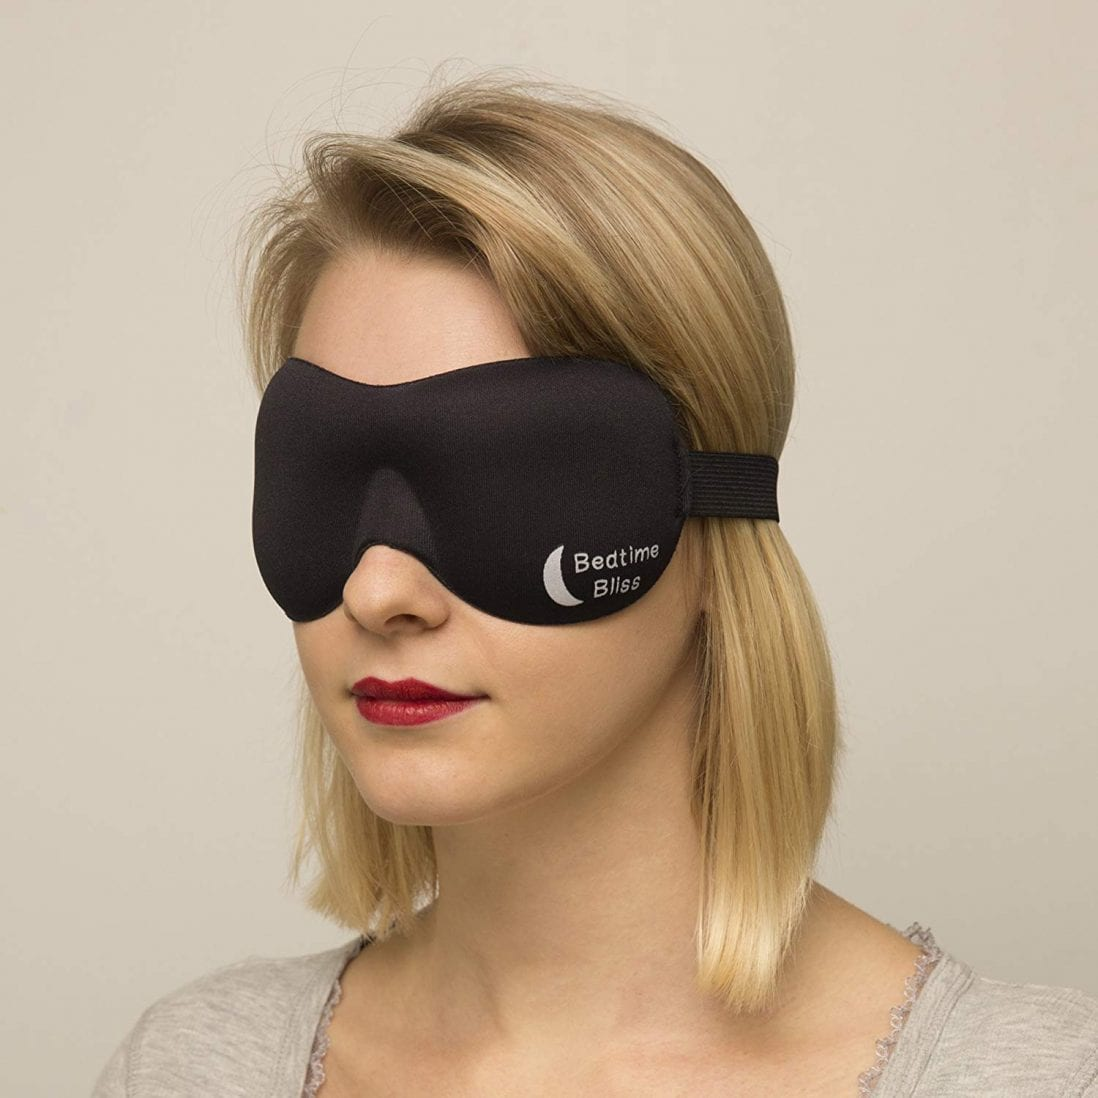 Bedtime Bliss Best Sleep Mask Review and Buying Guide by www.dailysleep.org